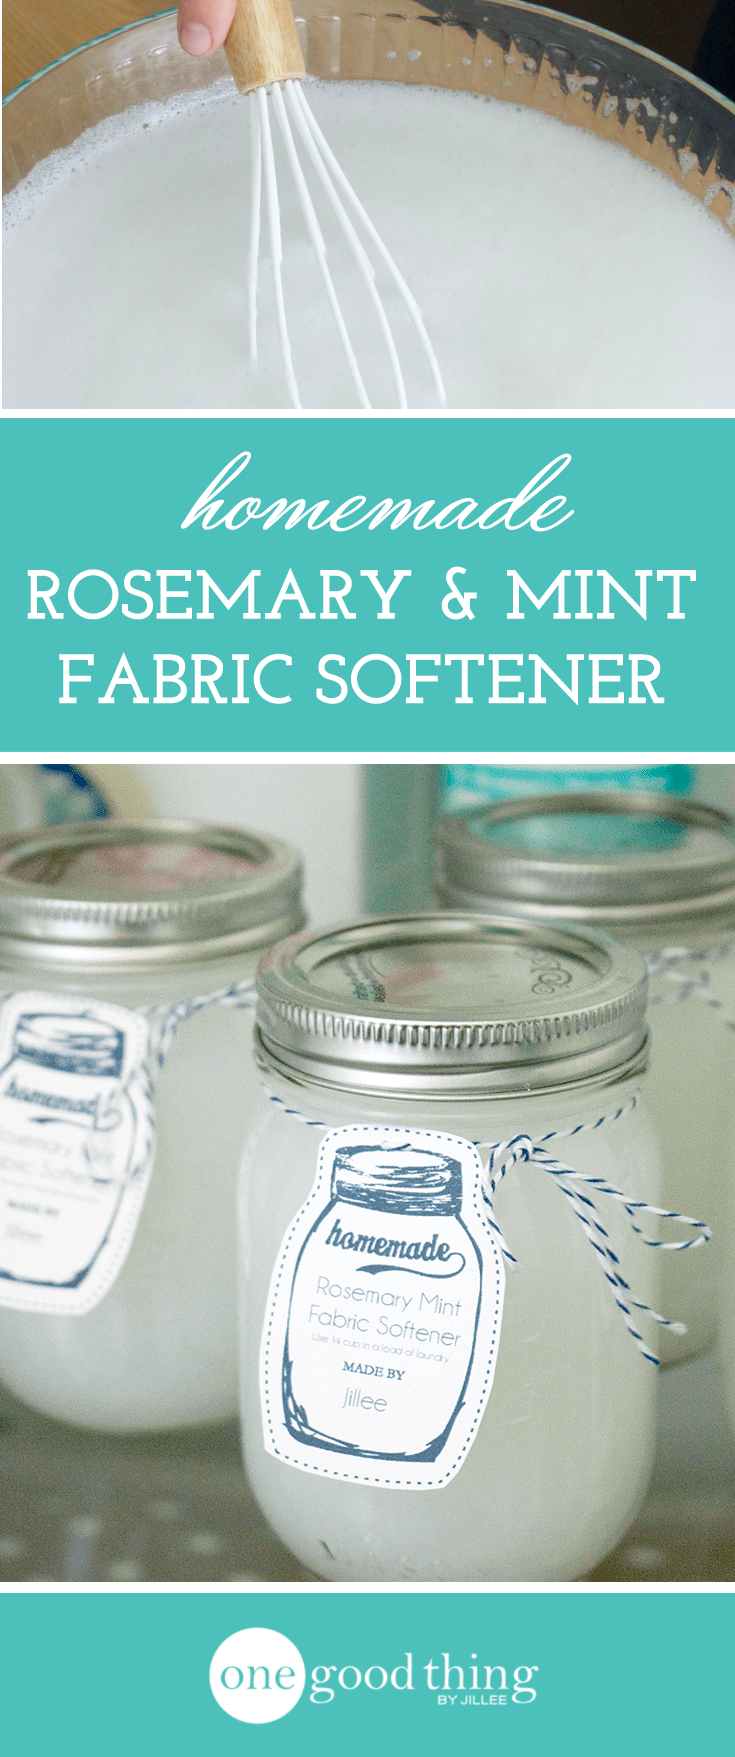 Is The Easiest And Best-Smelling Homemade Fabric Softener Out There This Is The Easiest And Best-Smelling Homemade Fabric Softener Out There - One Good Thing by JilleeThis Is The Easiest And Best-Smelling Homemade Fabric Softener Out There - One Good Thing by Jillee